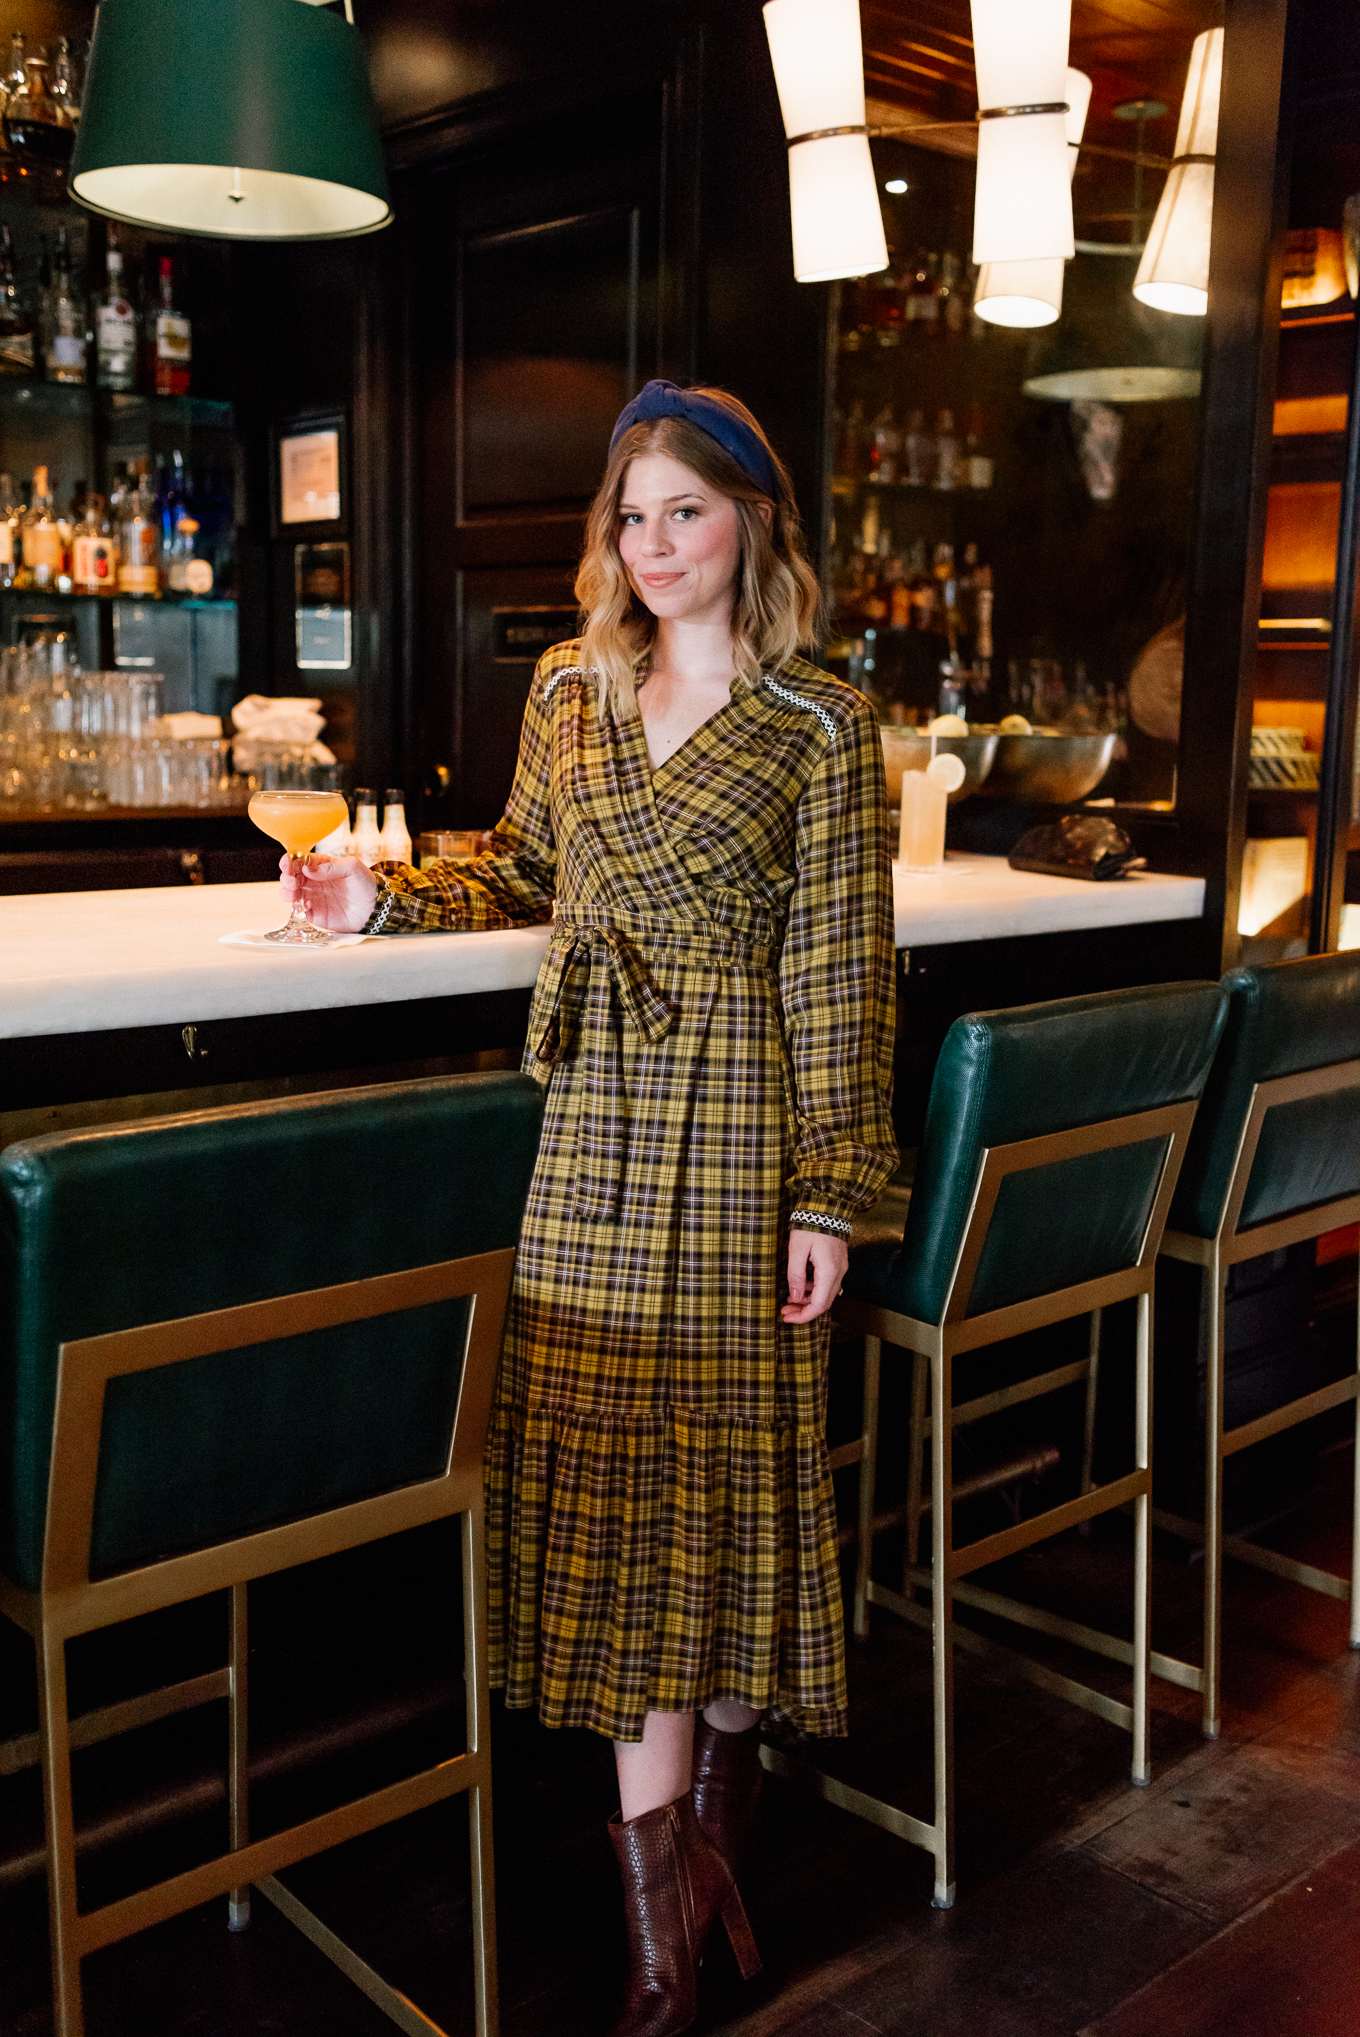 The BEST Charleston Bars | The Chicest Bar in Charleston | Louella Reese